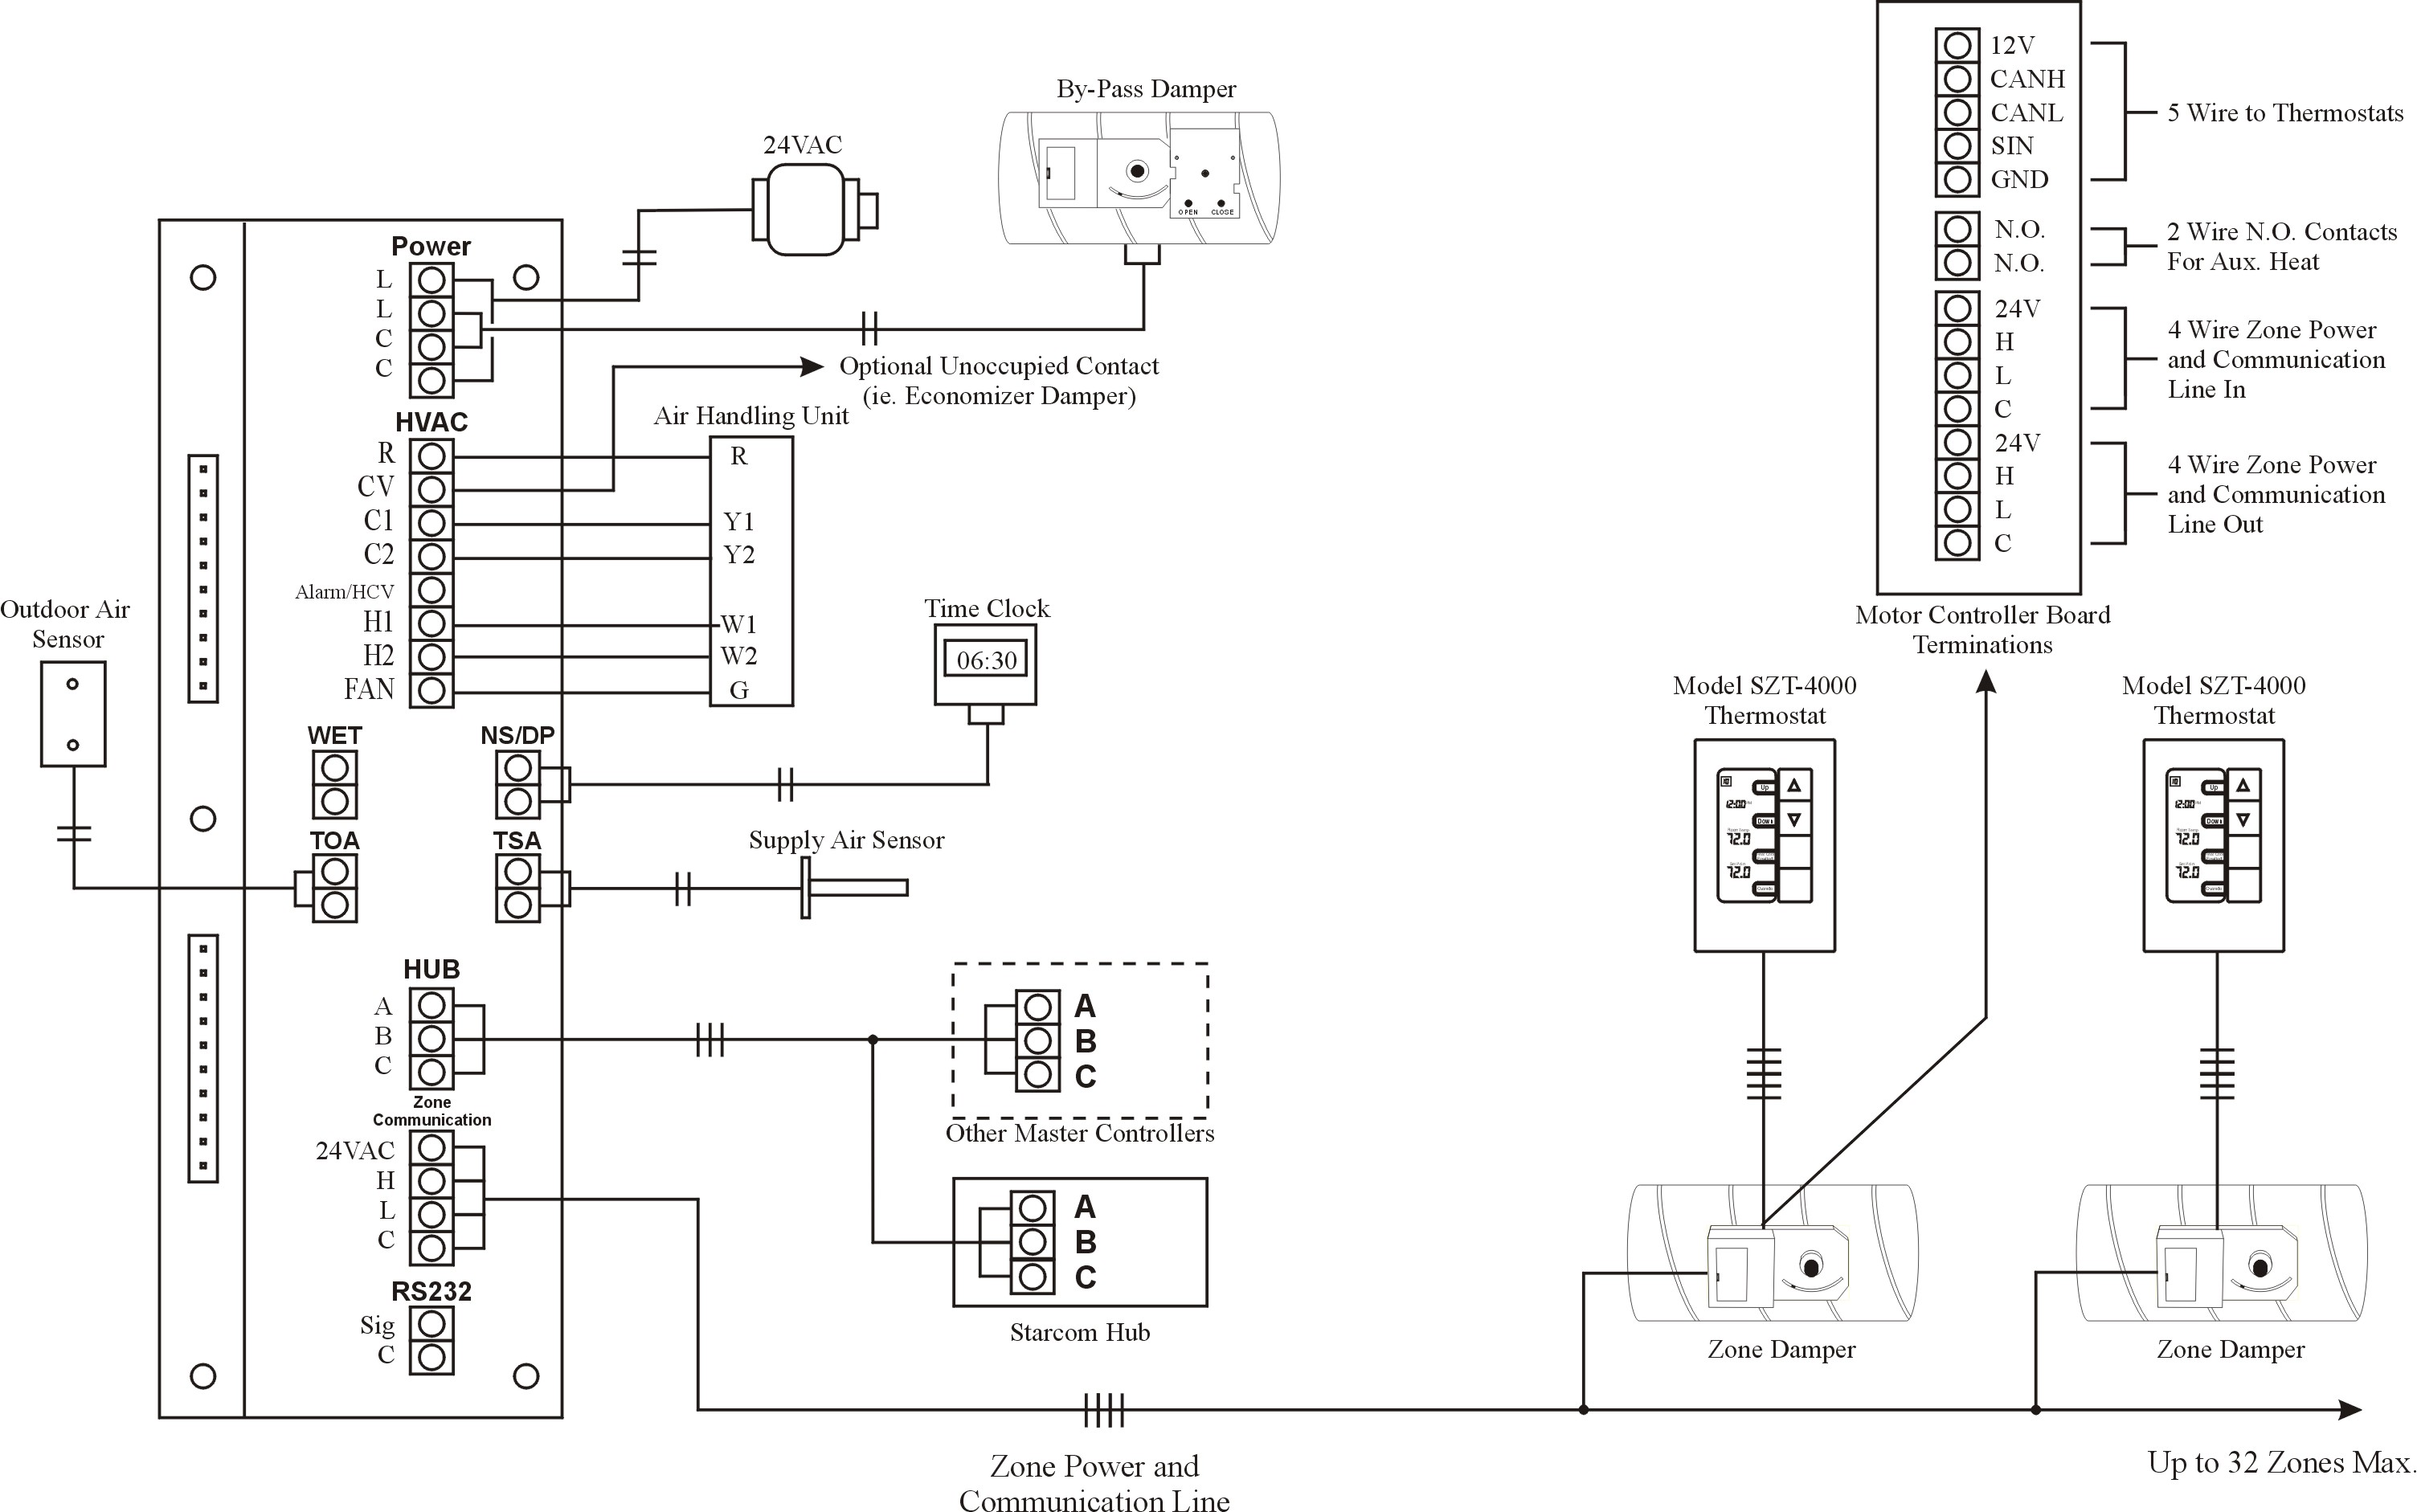 Starzone4000_wiring www zoneall ca images starzone4000_wiring jpg d4120 duct detector wiring diagram at alyssarenee.co